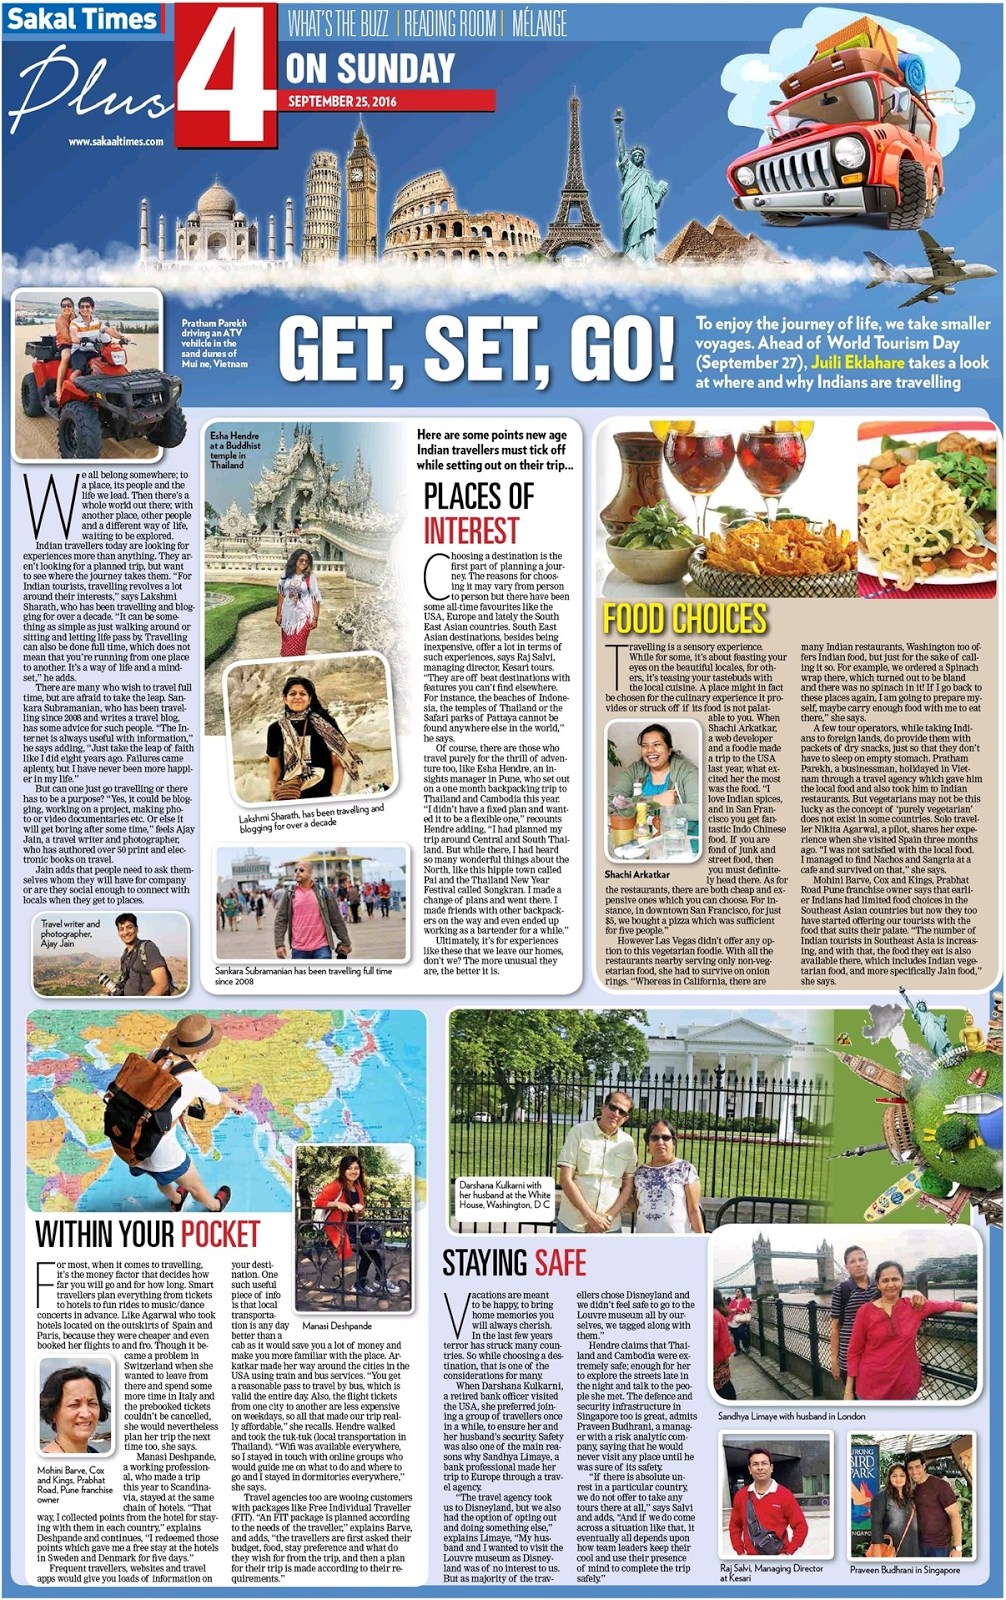 Get, Set, Go - Mentioned in Sakal Times